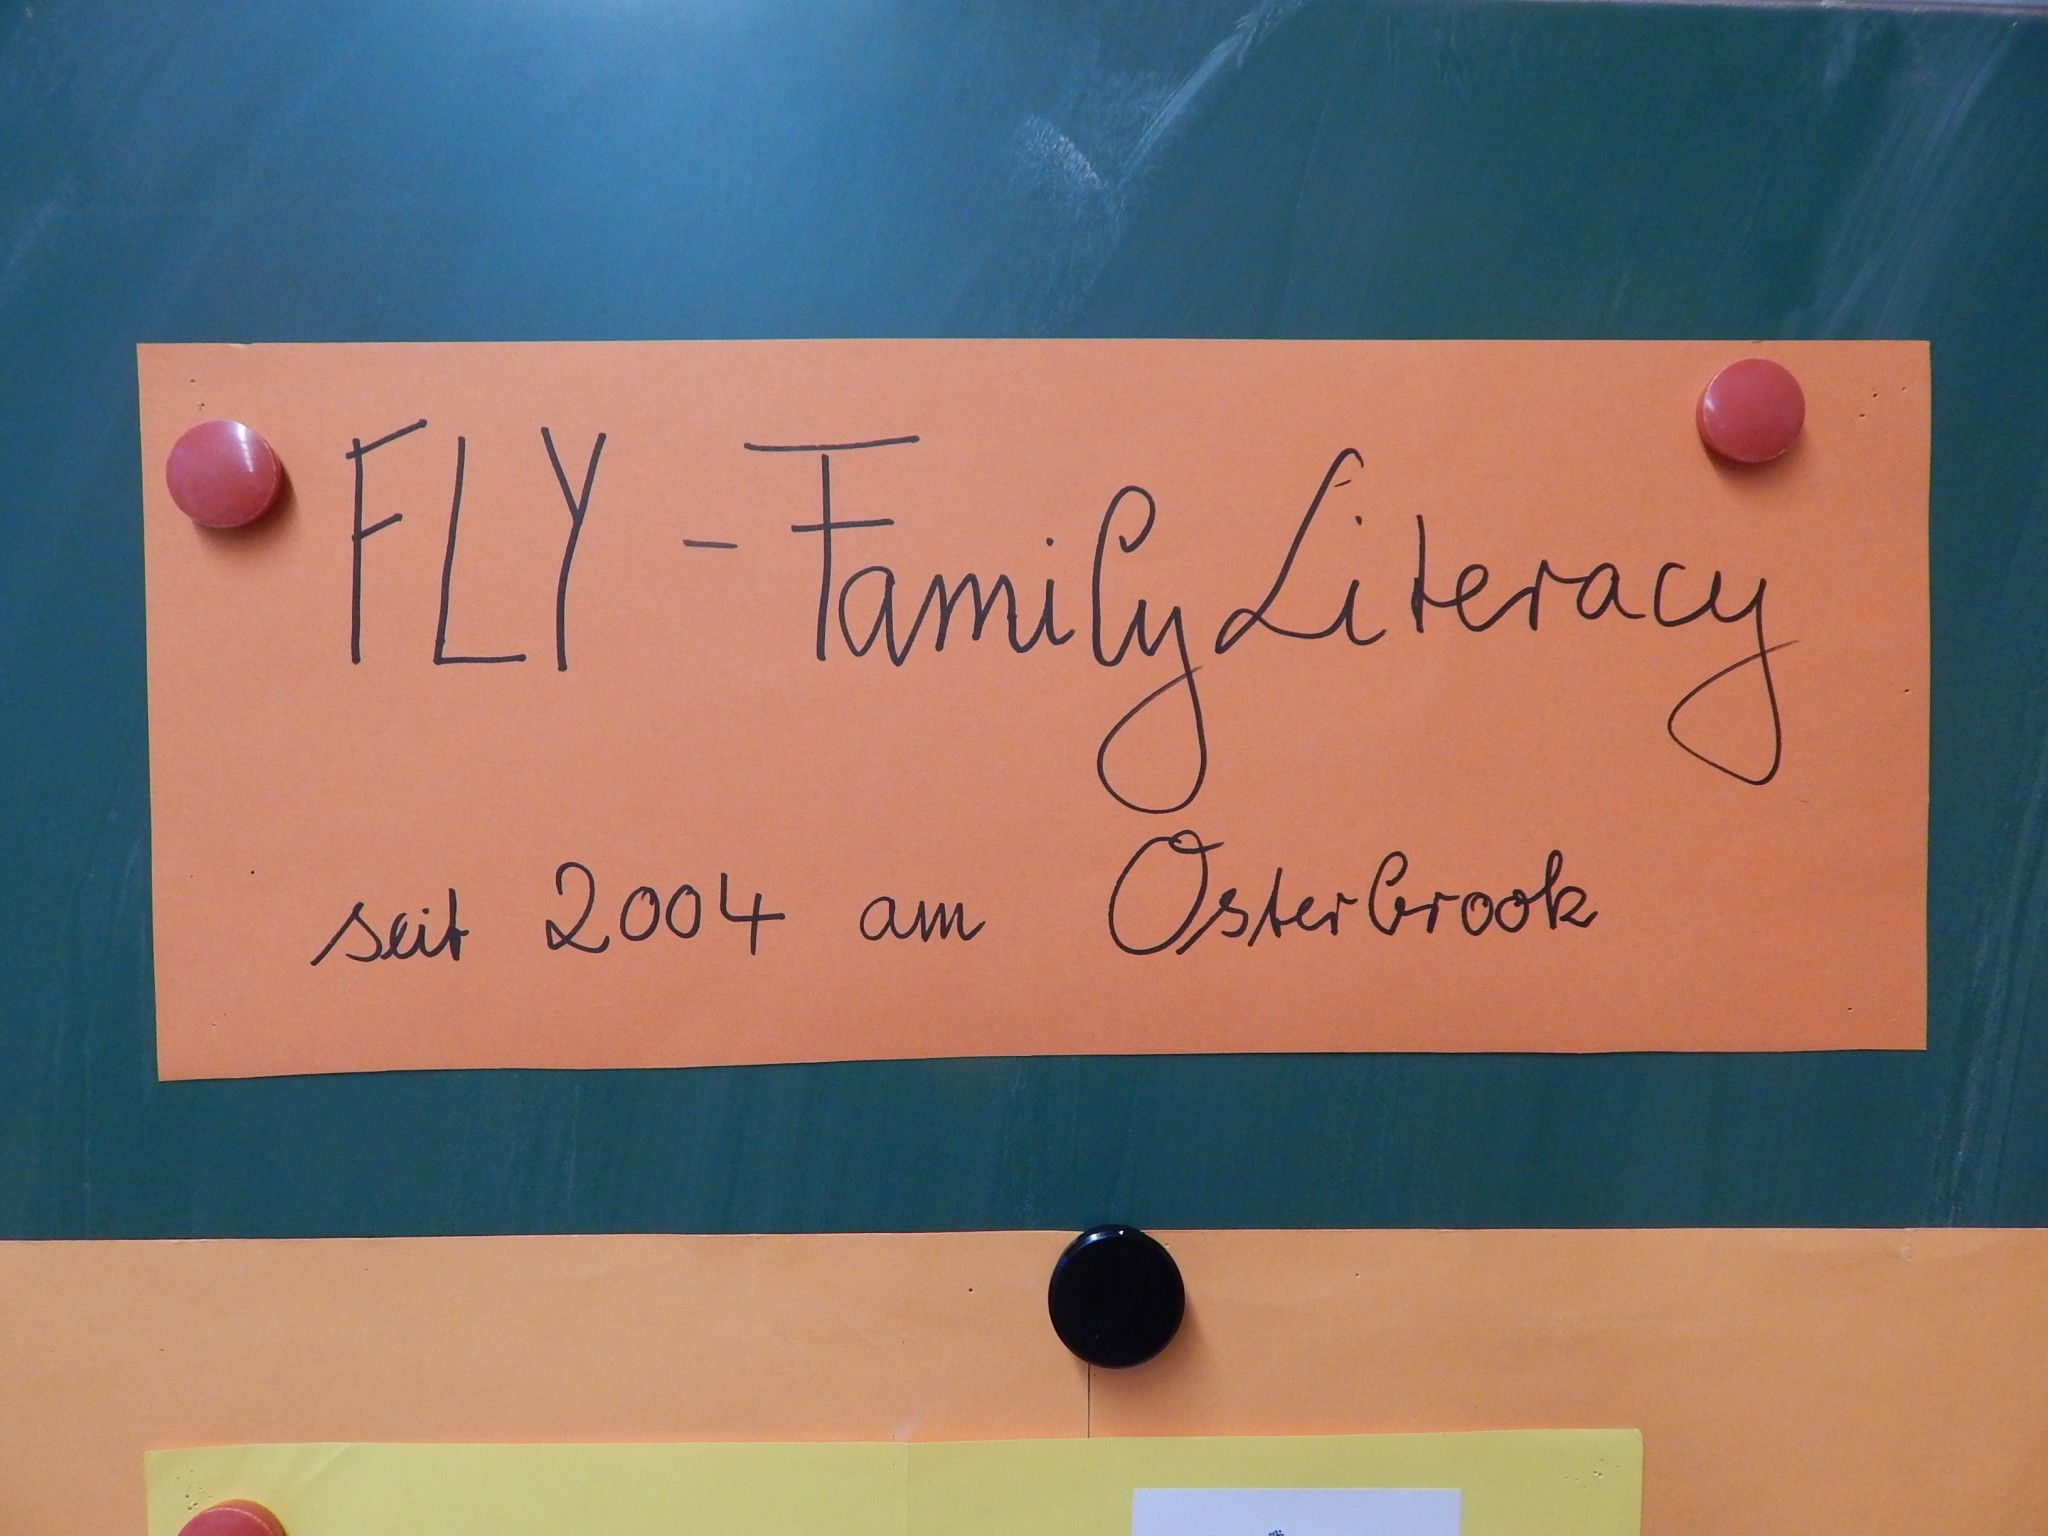 Family Literacy (FLY)